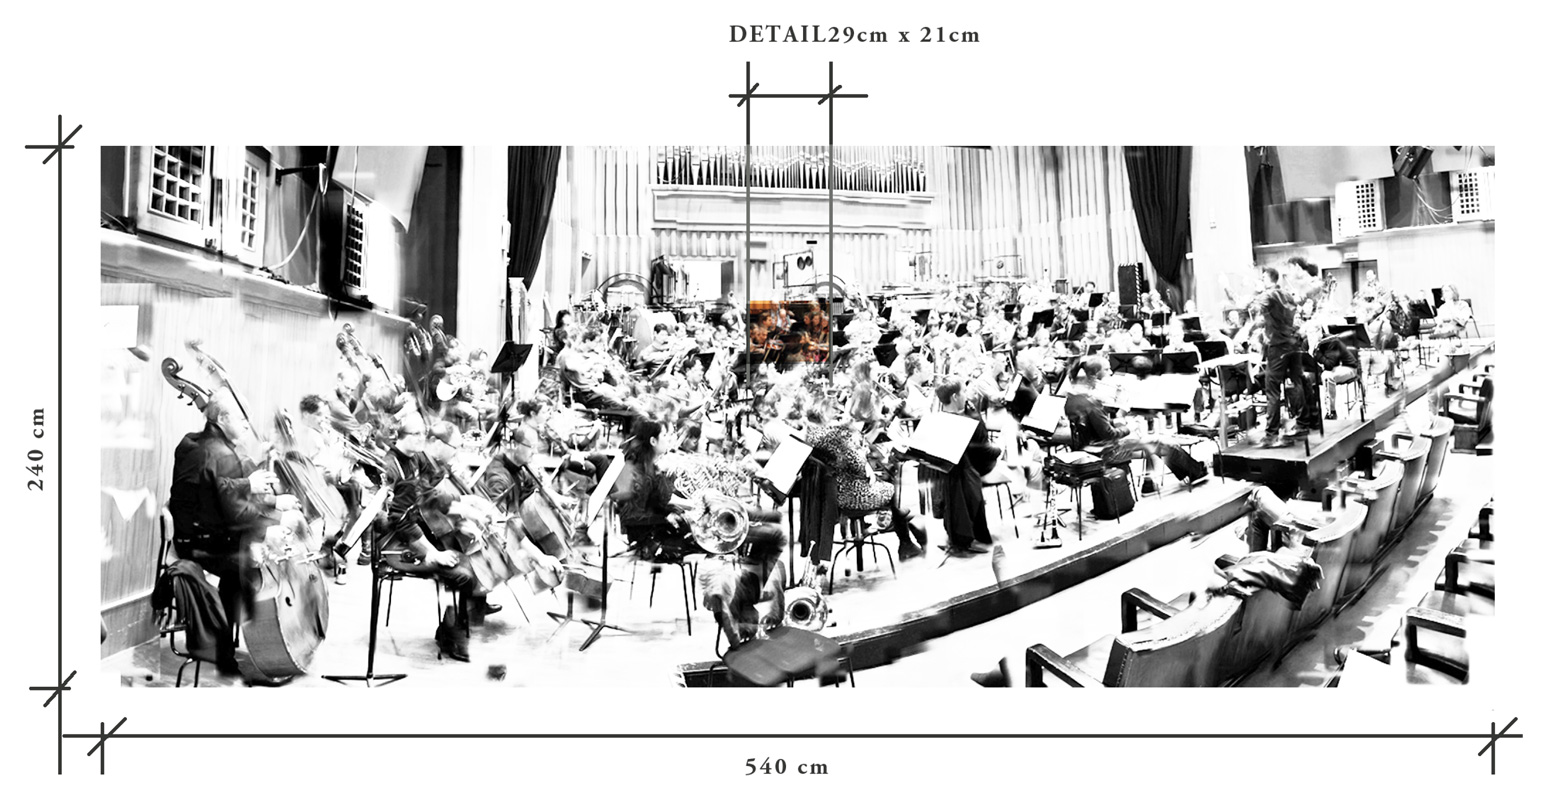 Radio Symphonieorchester Wien - detailed overview